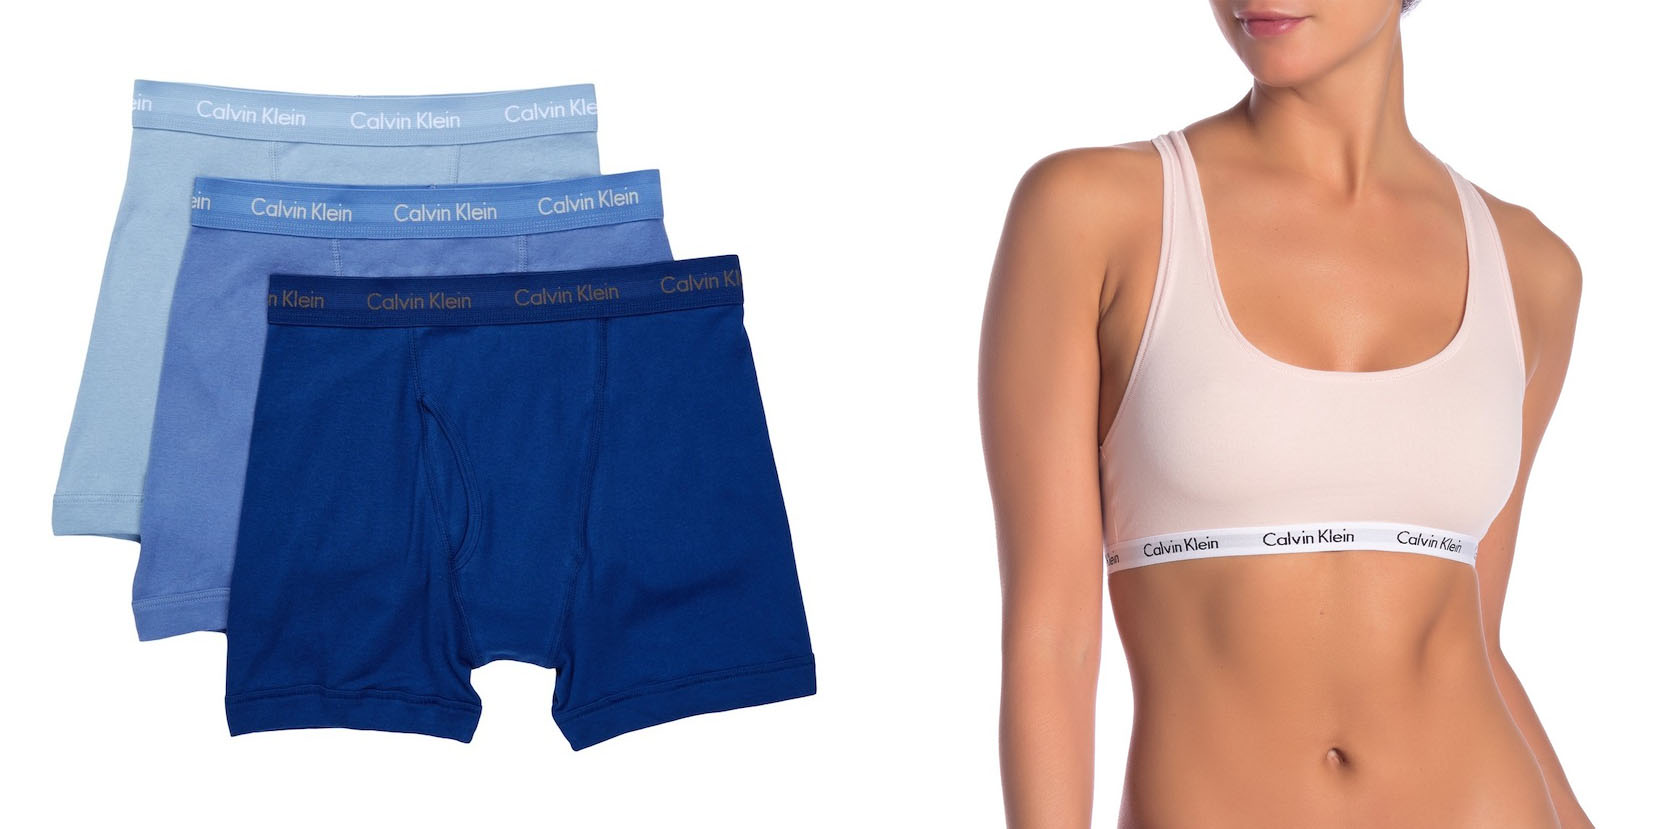 Opuesto tornillo gas  Amazon's Calvin Klein Sale offers up to 50% off underwear, t-shirts, more -  9to5Toys